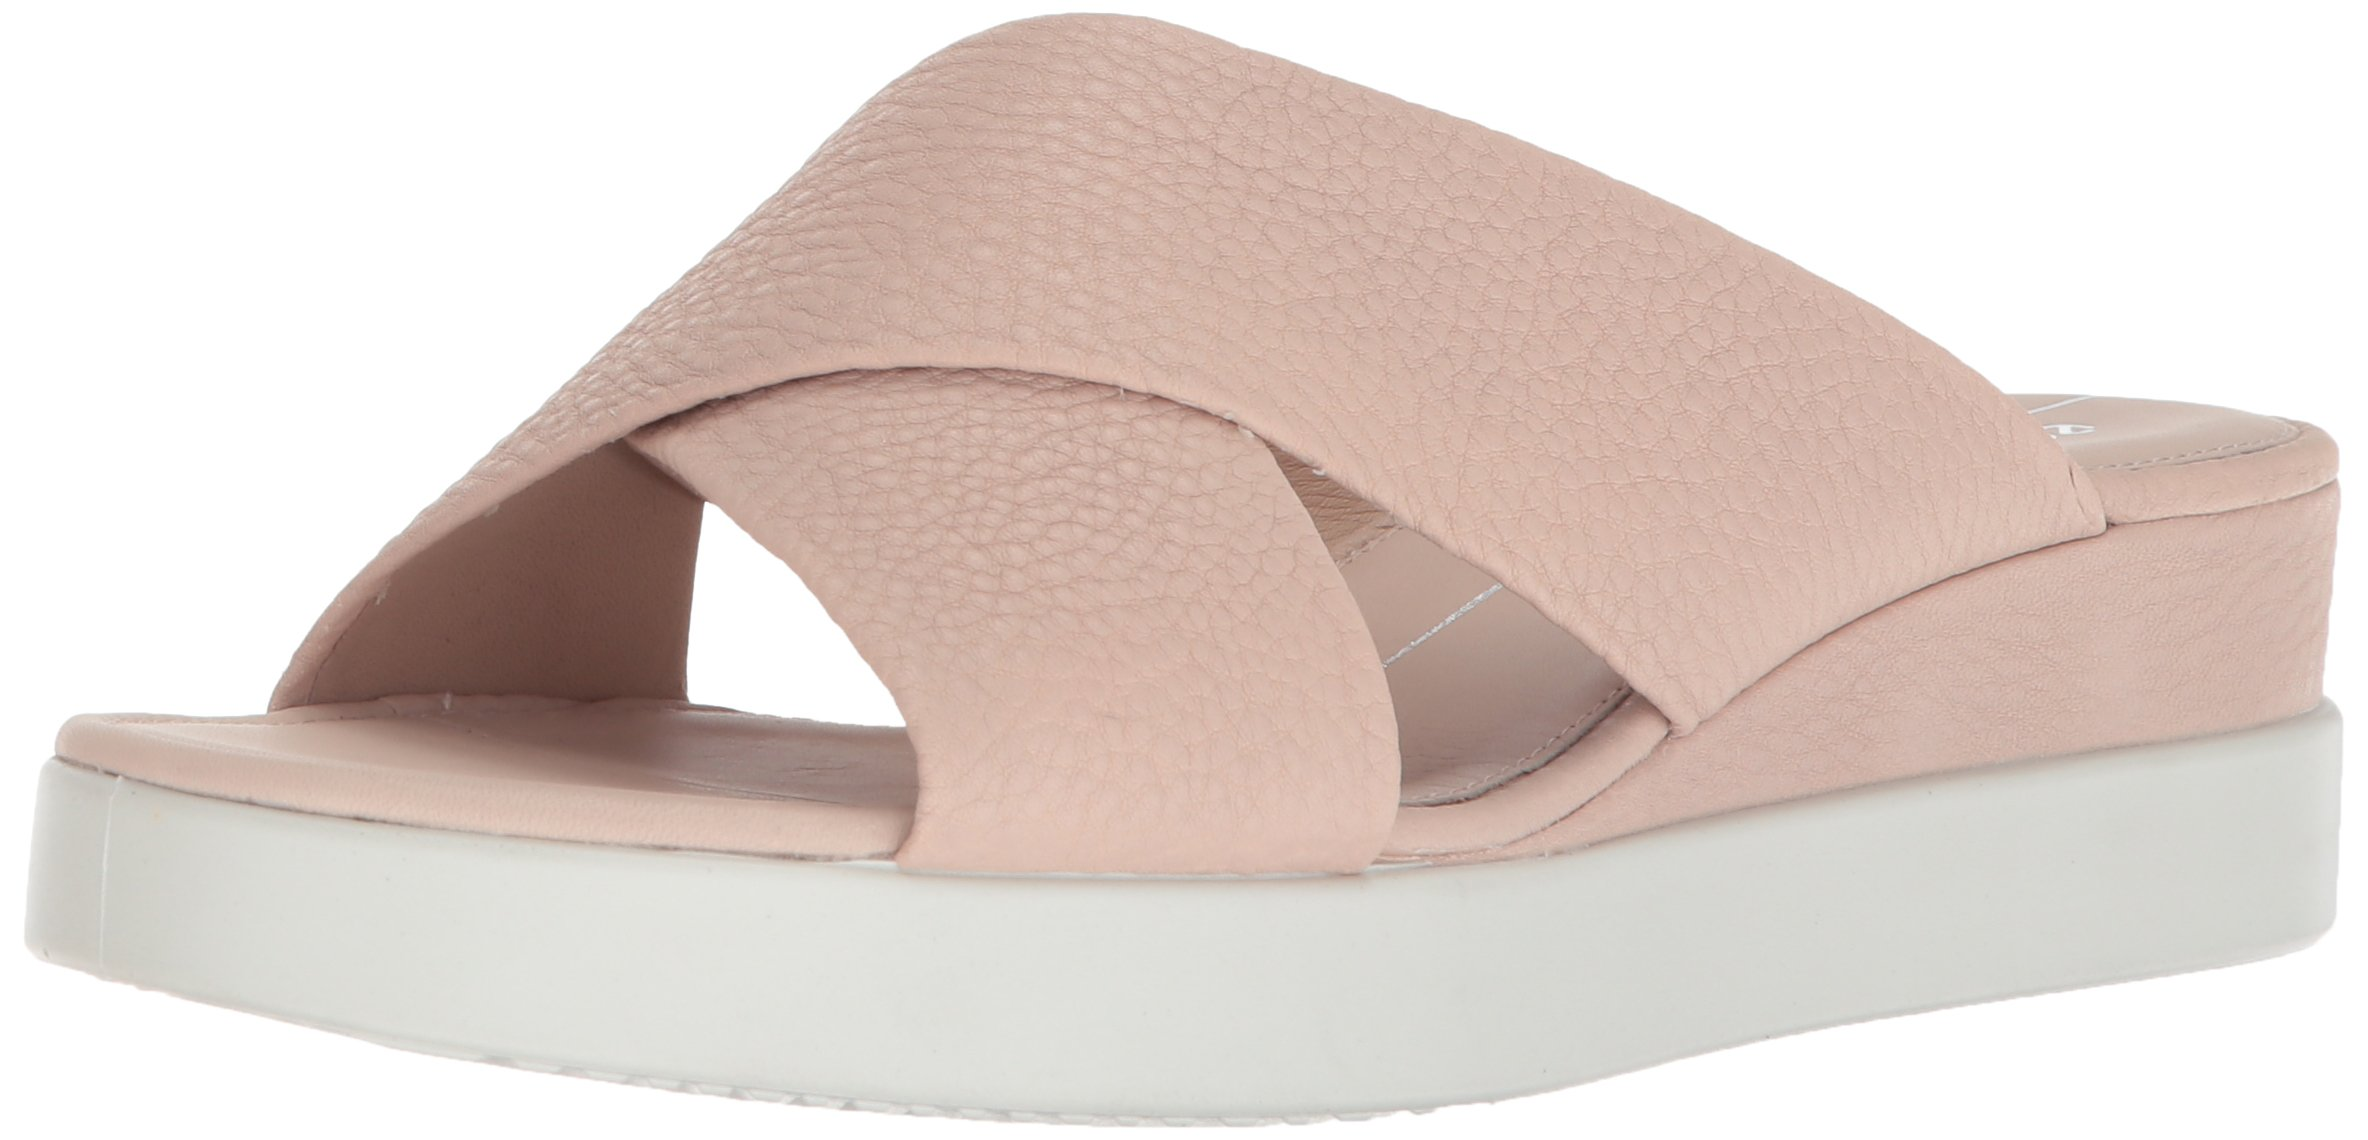 ECCO Women's Women's Touch Plateau Slide Sandal, Rose Dust, 38 M EU (7-7.5 US)